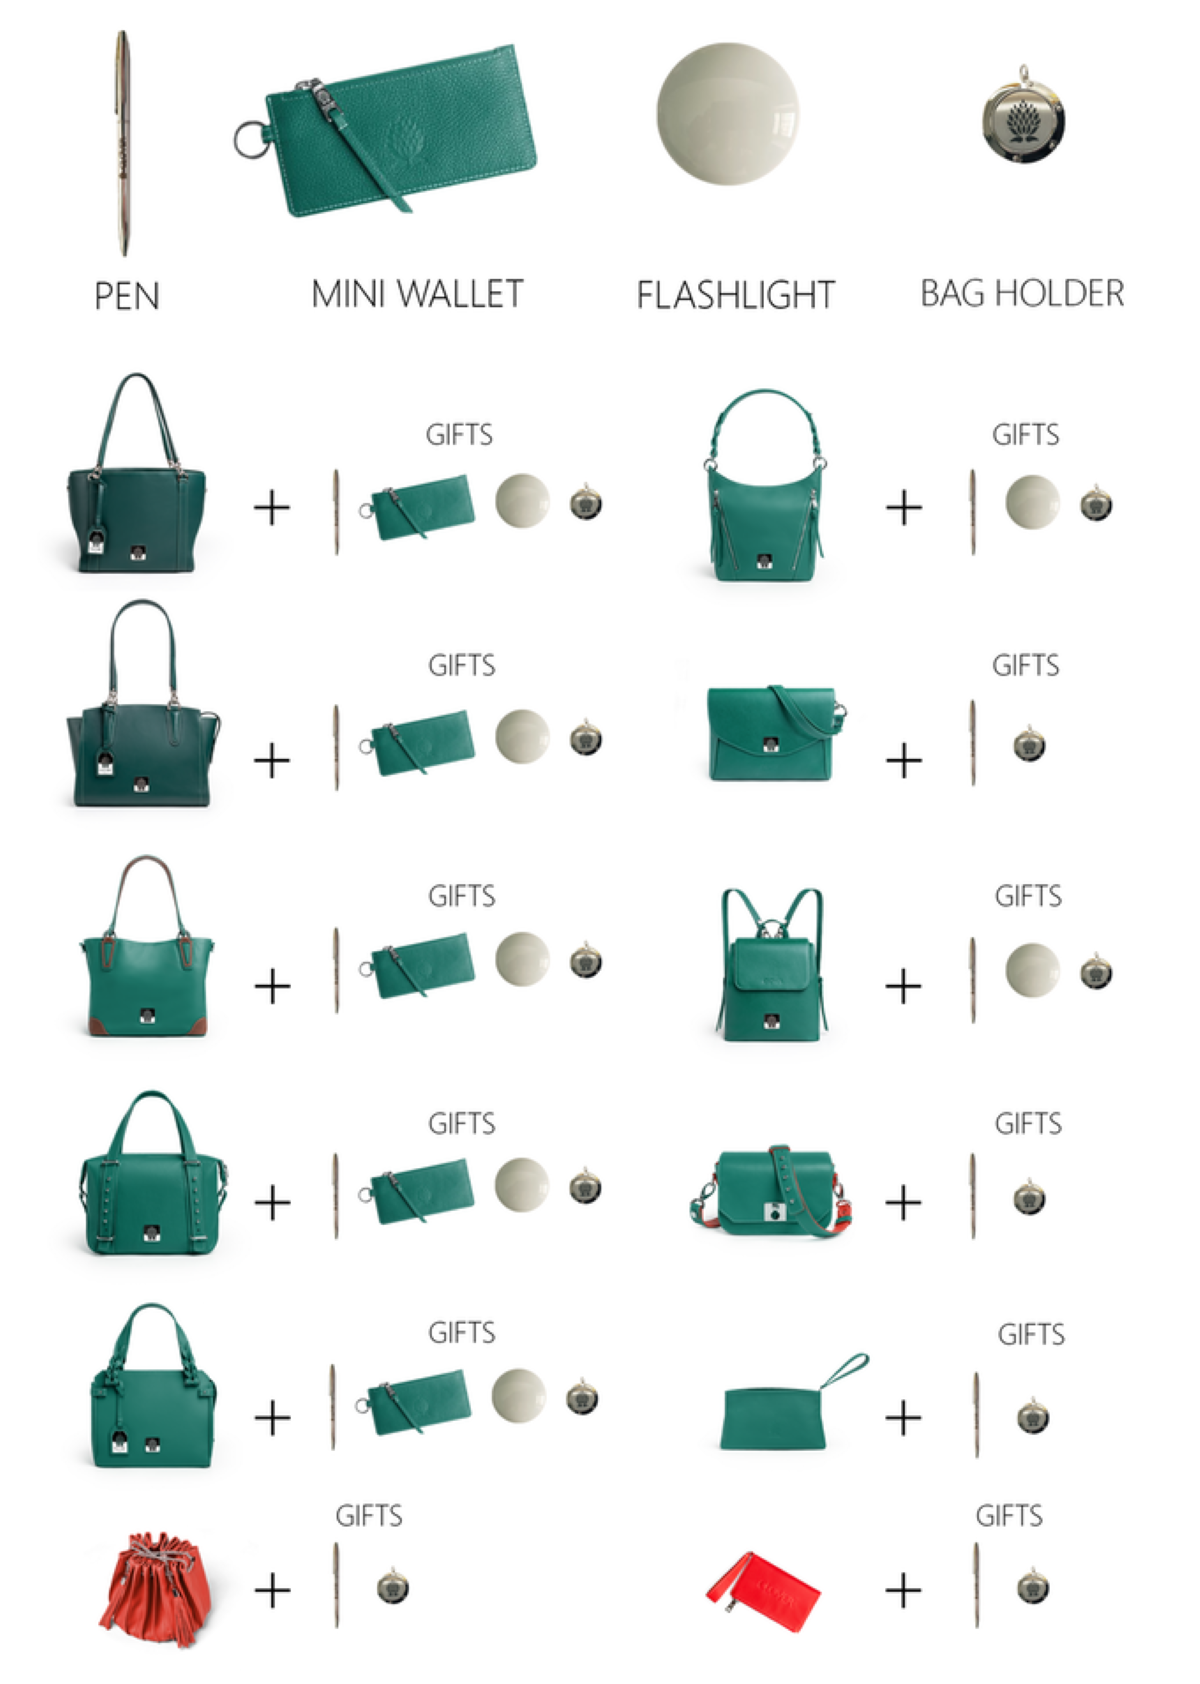 Clover Bag - Accessories